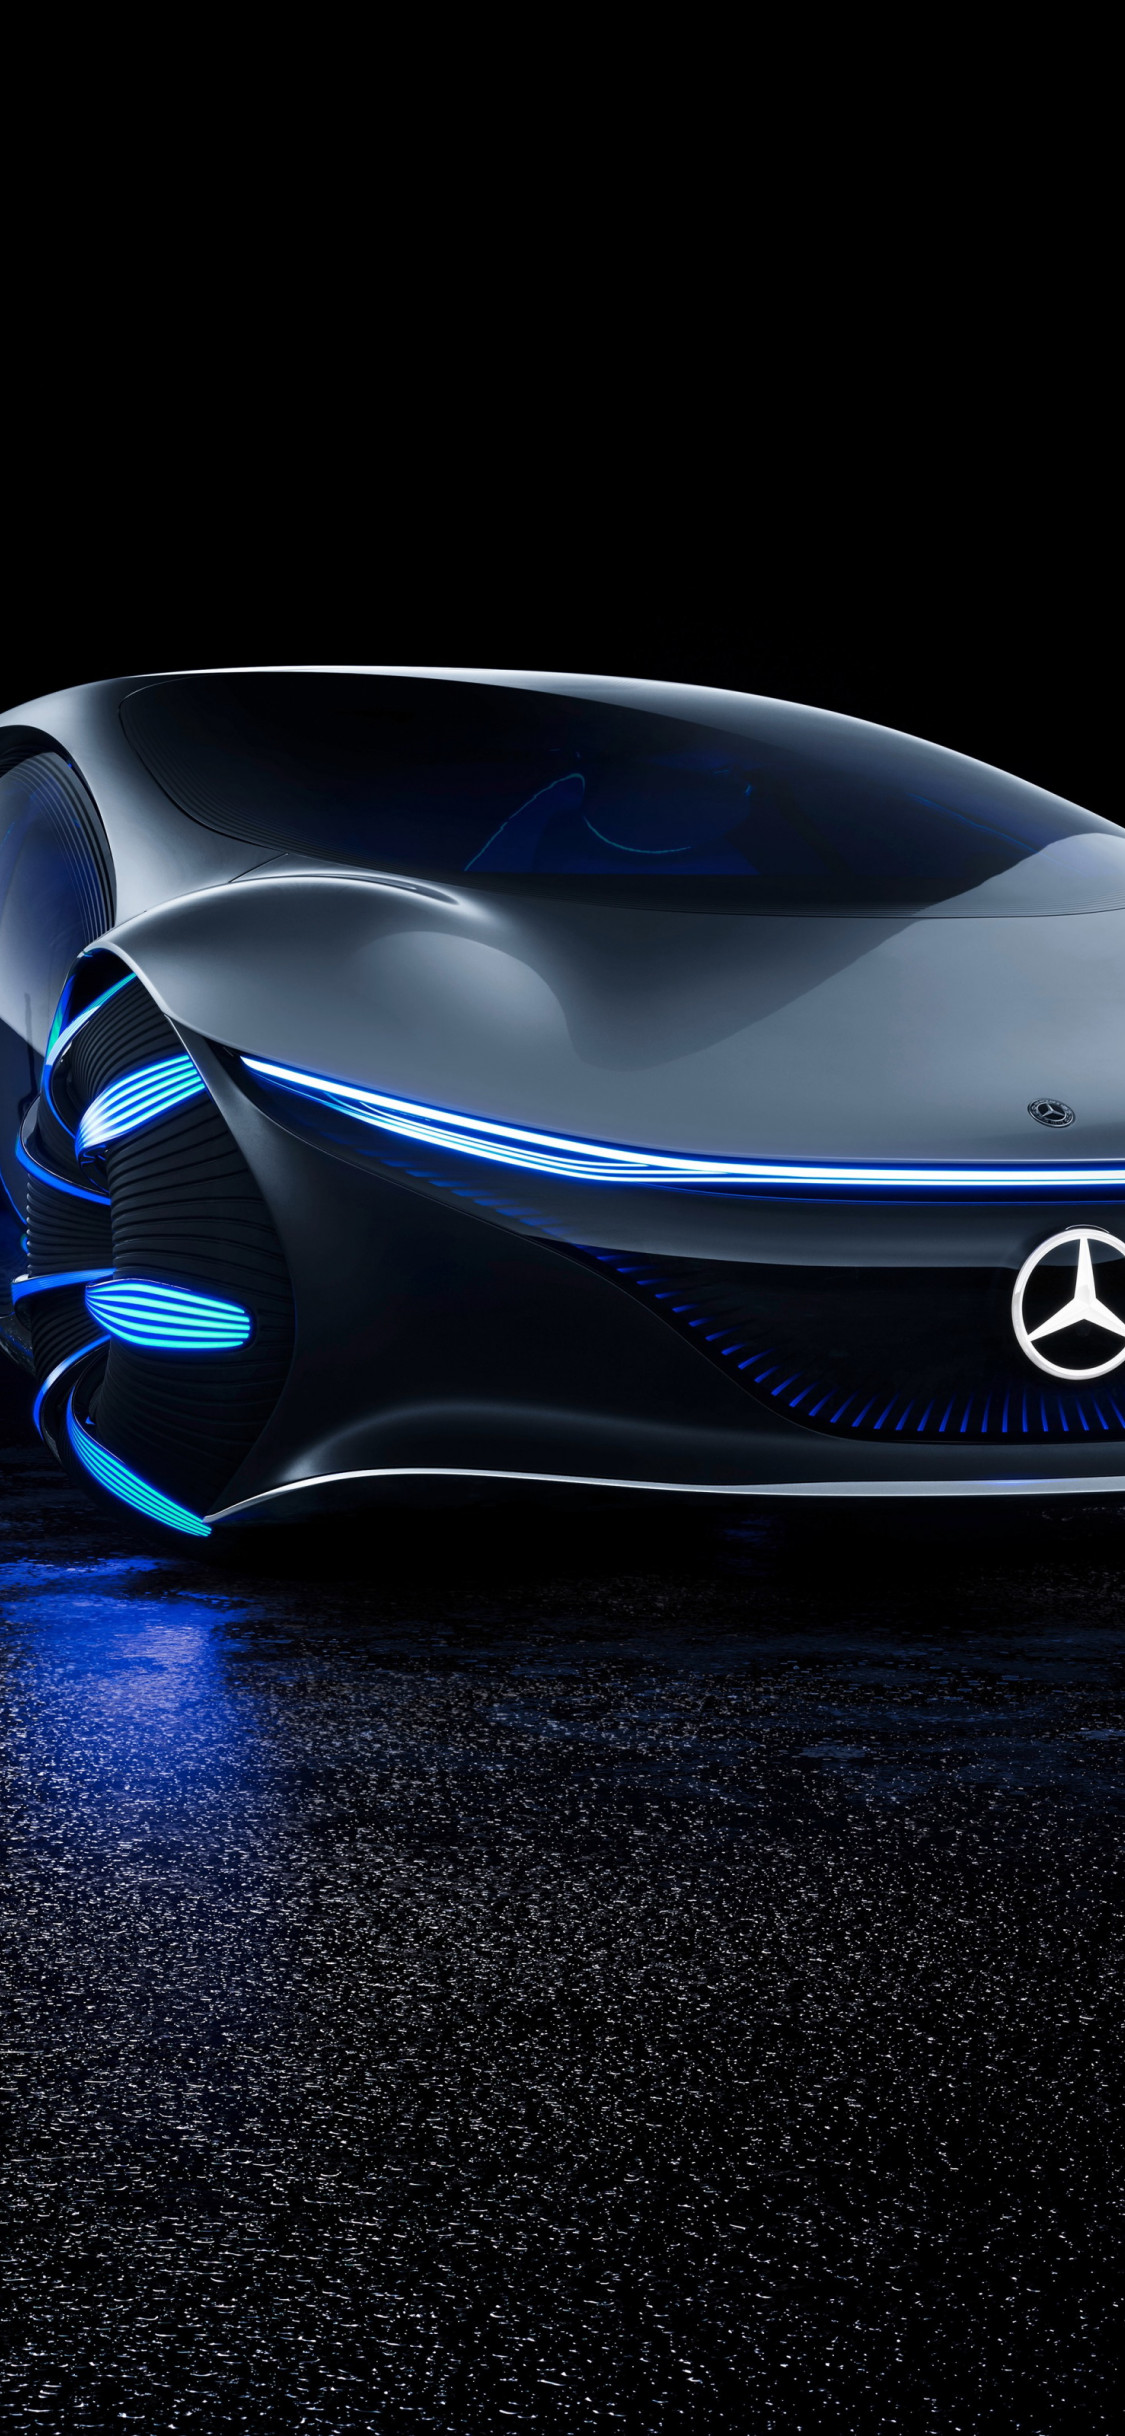 Mercedes Benz VISION AVTR front side wallpaper 1125x2436